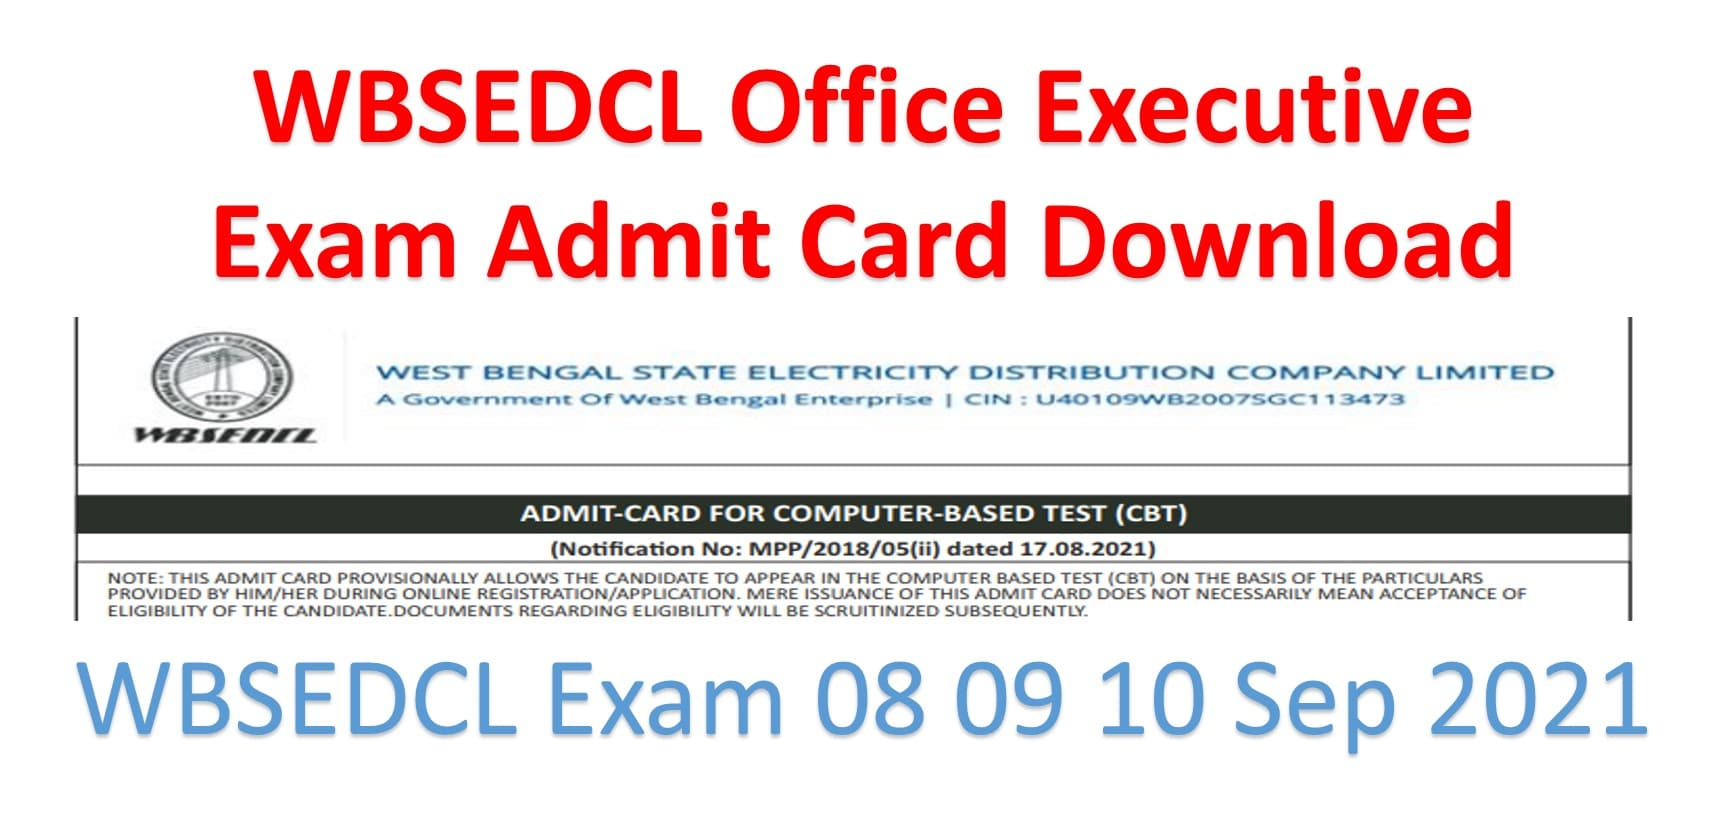 WBSEDCL Office Executive Admit Card Download